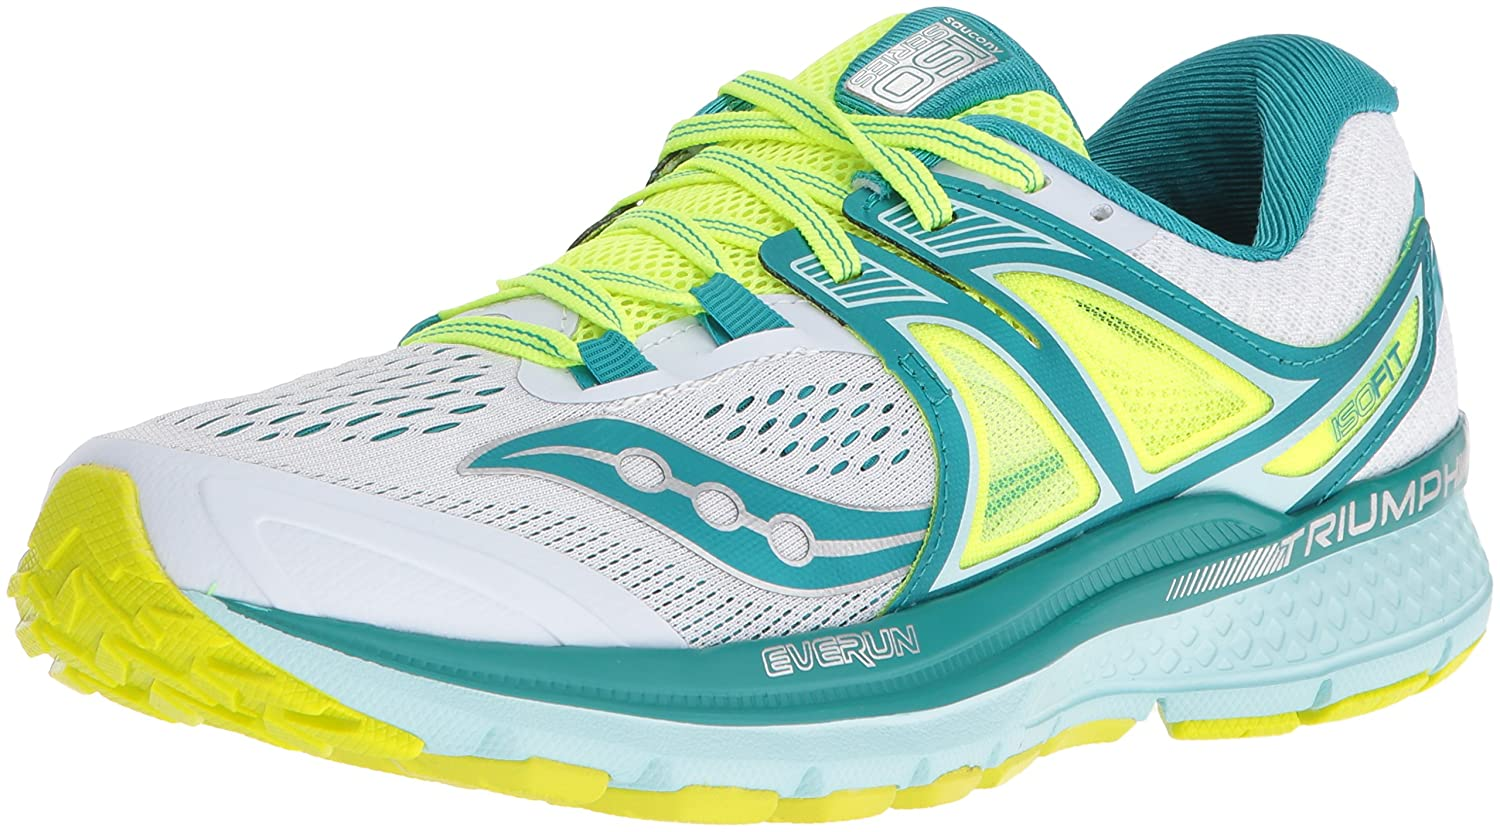 Saucony Women's Triumph Iso 3 Running Sneaker B01GILHRN2 8 B(M) US|White/Teal/Citron